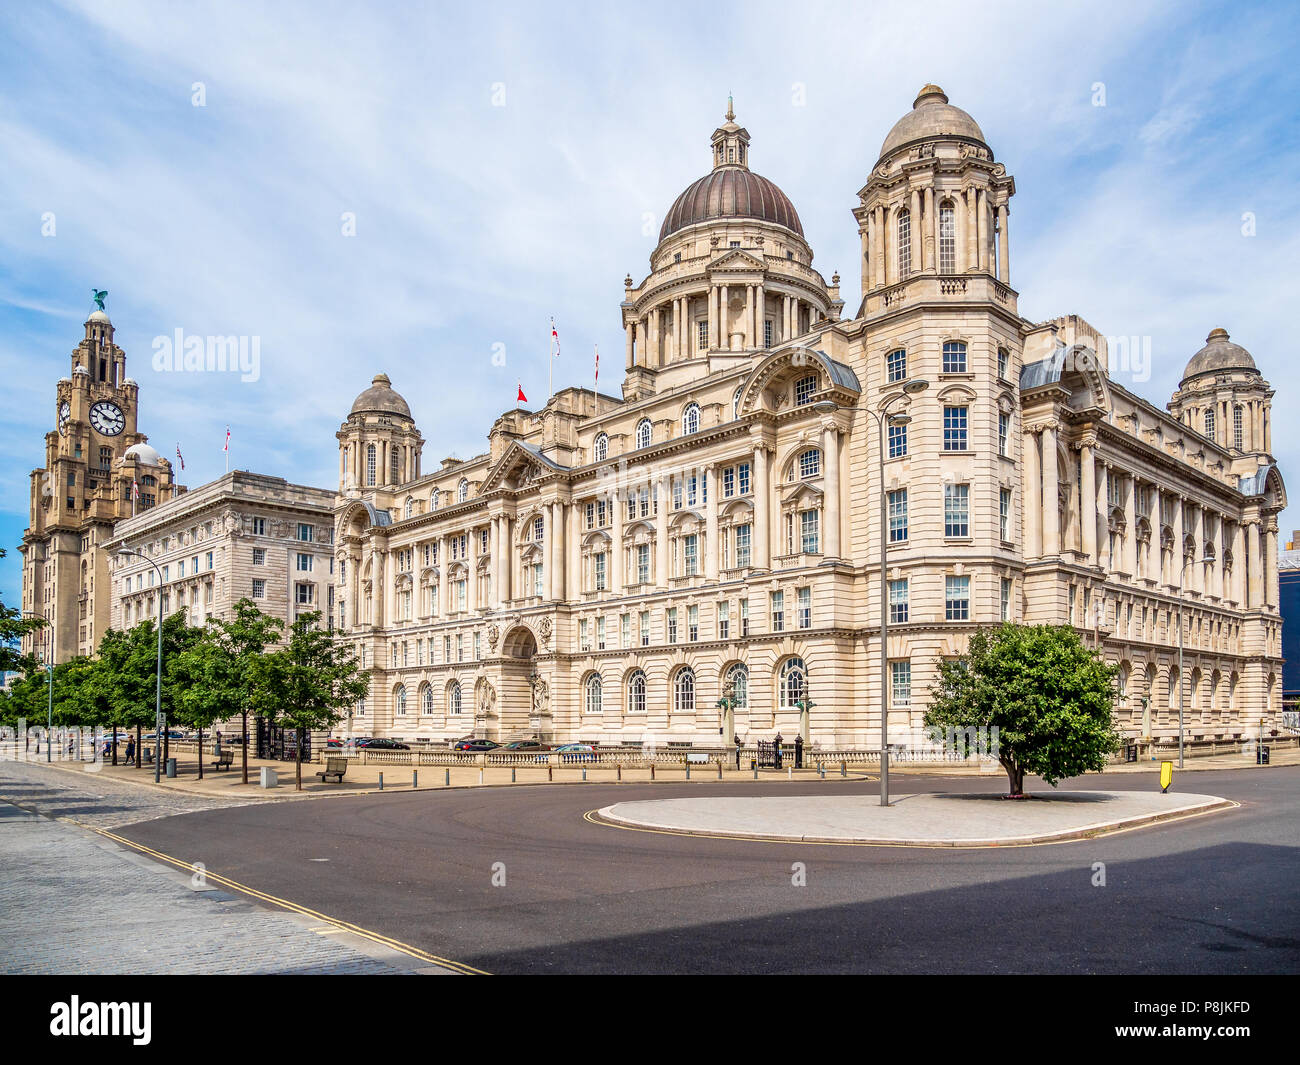 Liverpool waterfront and Pier Head, UK - Stock Image